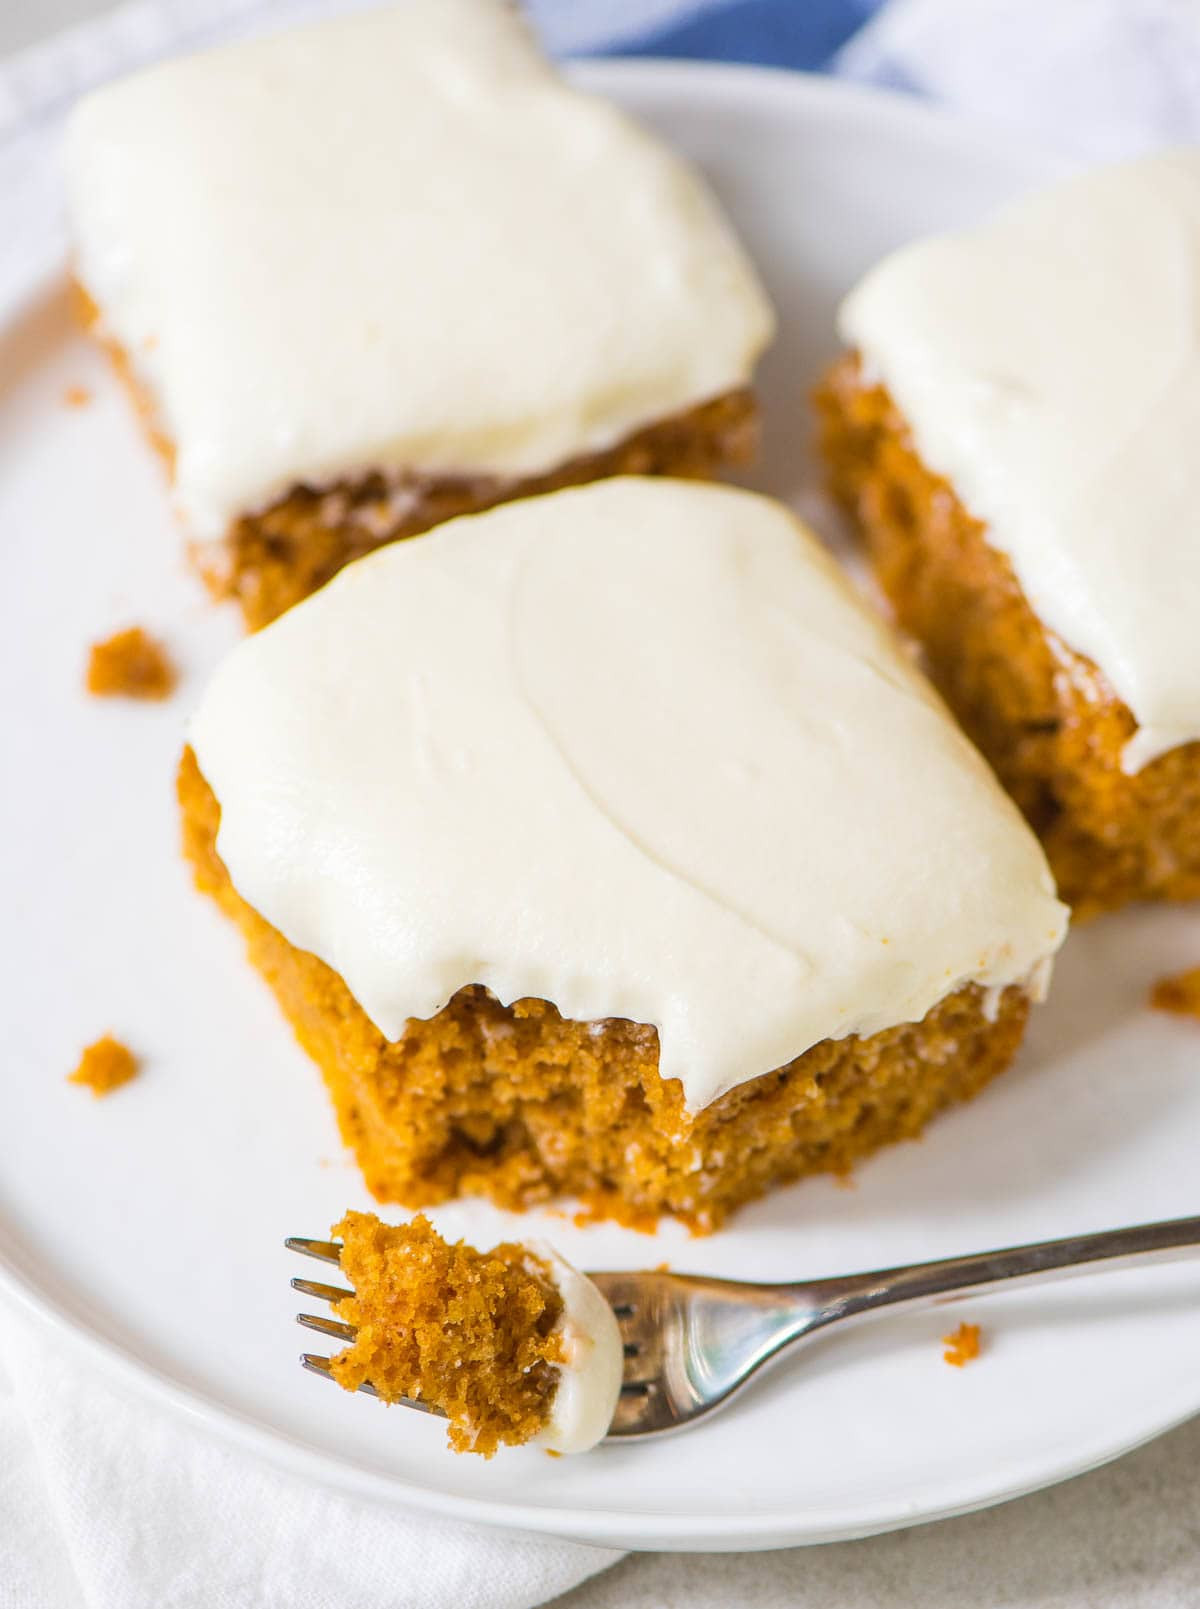 Healthy Pumpkin Cake Recipe  Pumpkin Sheet Cake with Fluffy Cream Cheese Frosting